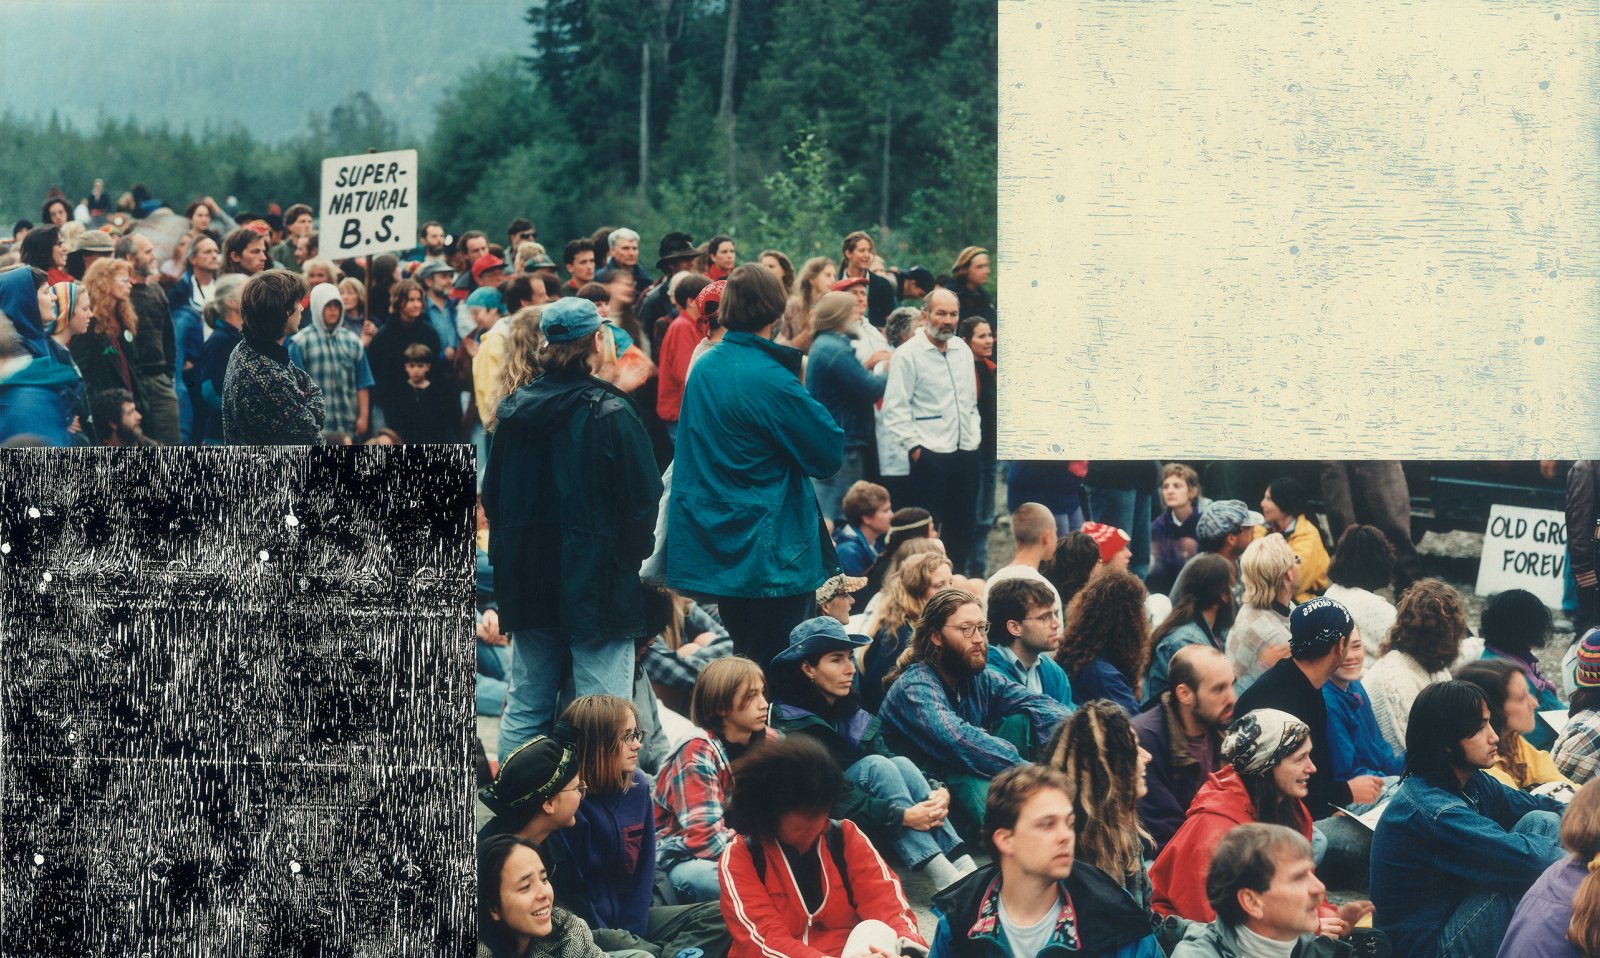 Ian Wallace, Clayoquot Protest (August 9, 1993) IV, 1993–1995, photolaminate with acrylic on canvas, 72 x 120 x 1 in. (184 x 306 x 3 cm) by Ian Wallace